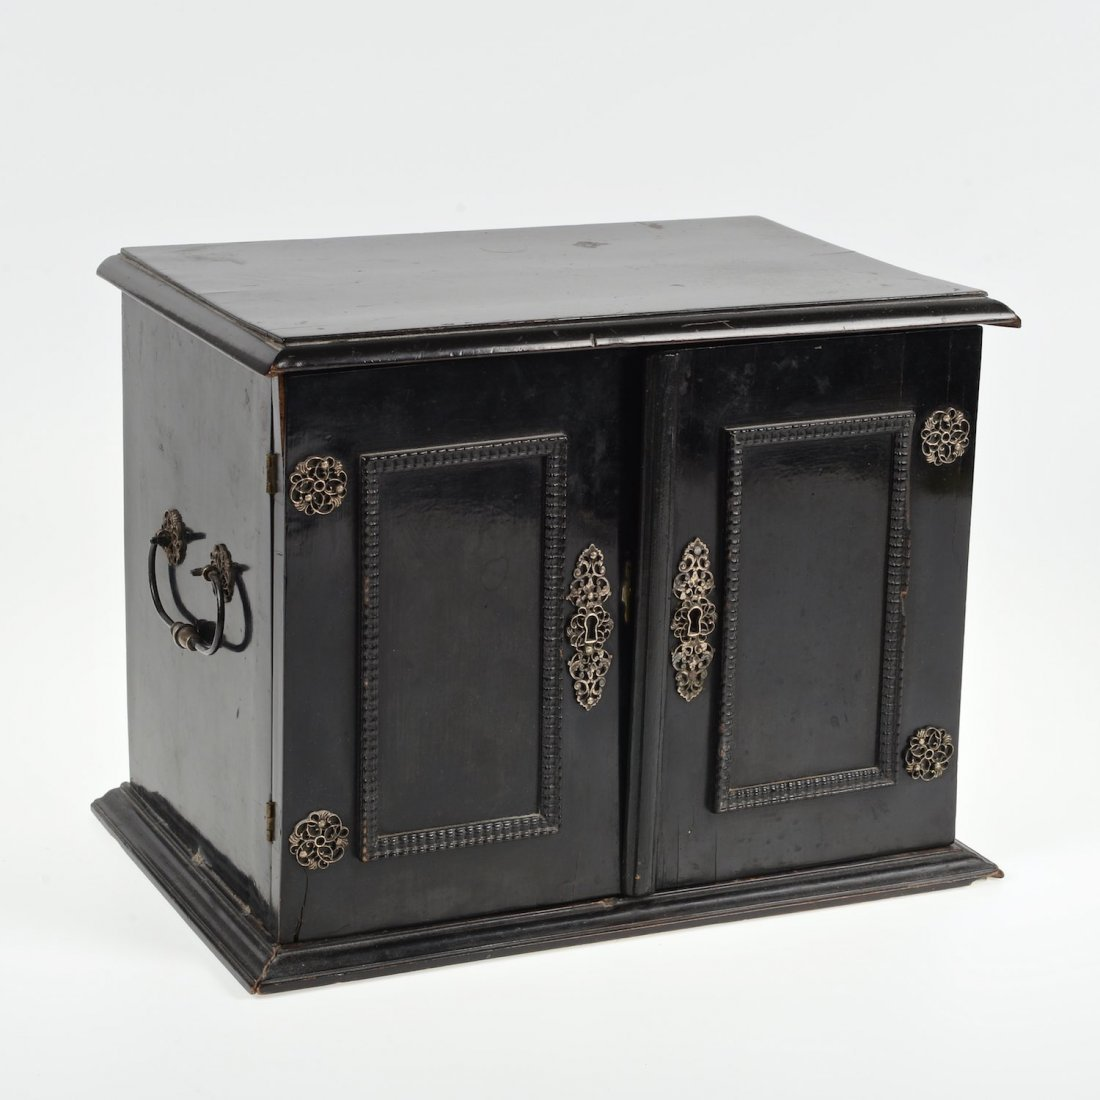 Dutch silver mounted ebonized wood table cabinet